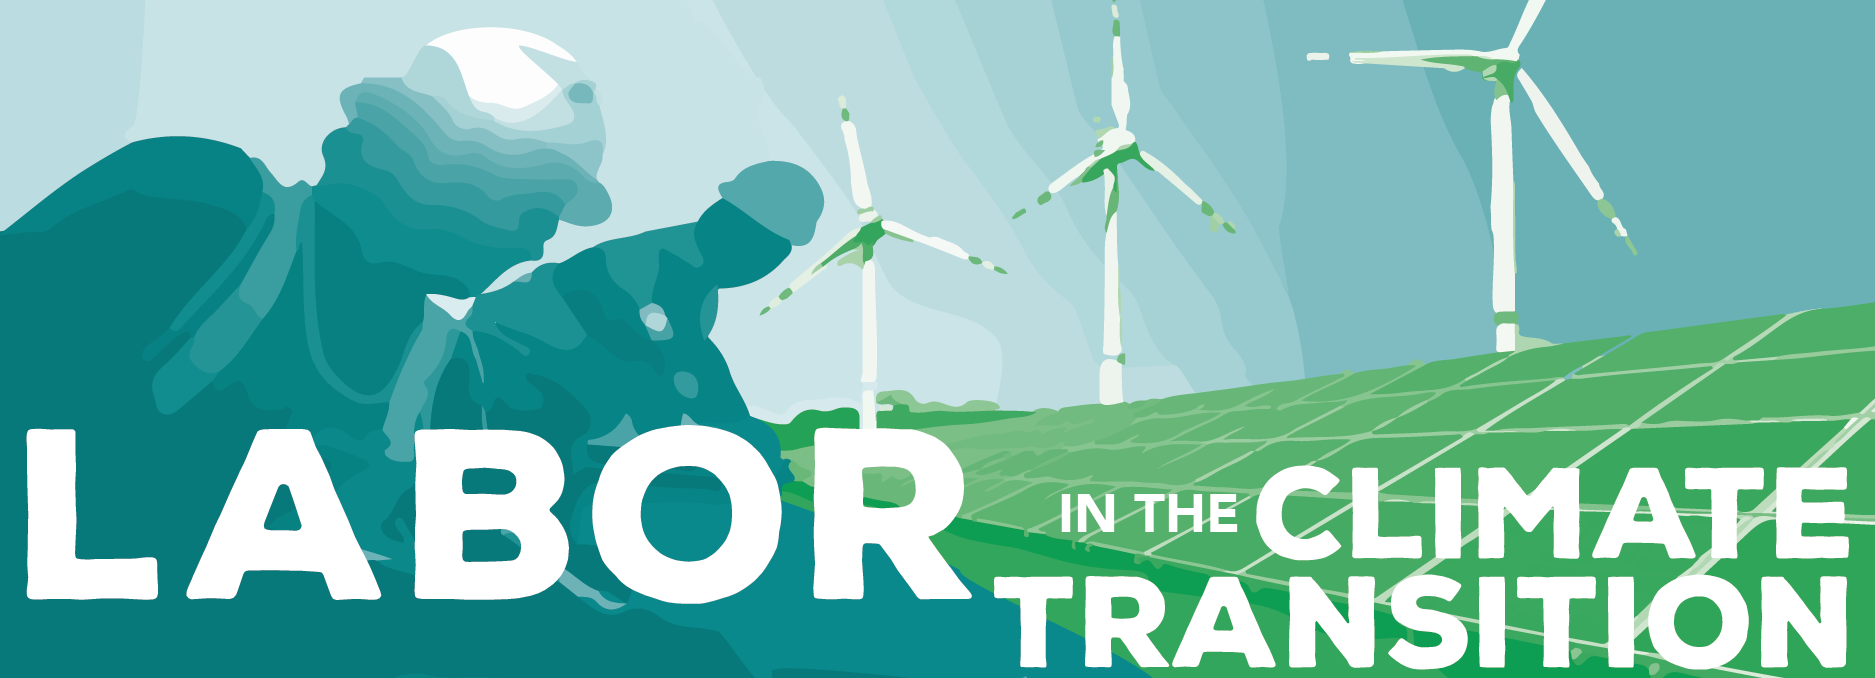 CONFERENCE: Labor in the Climate Transition: Charting the